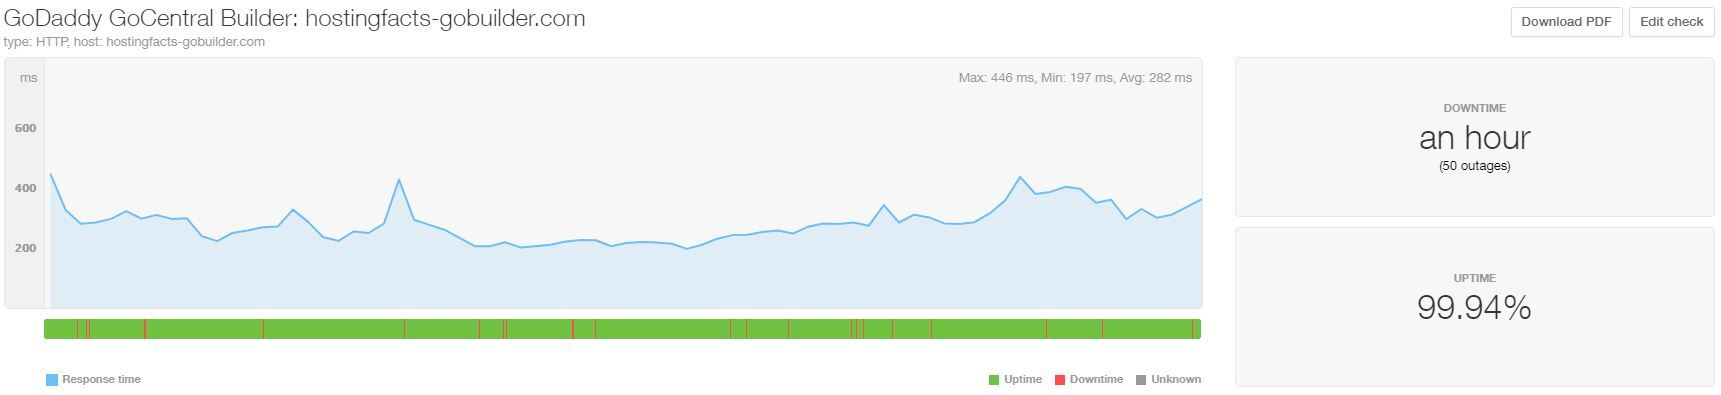 GoDaddy uptime and speed April-June